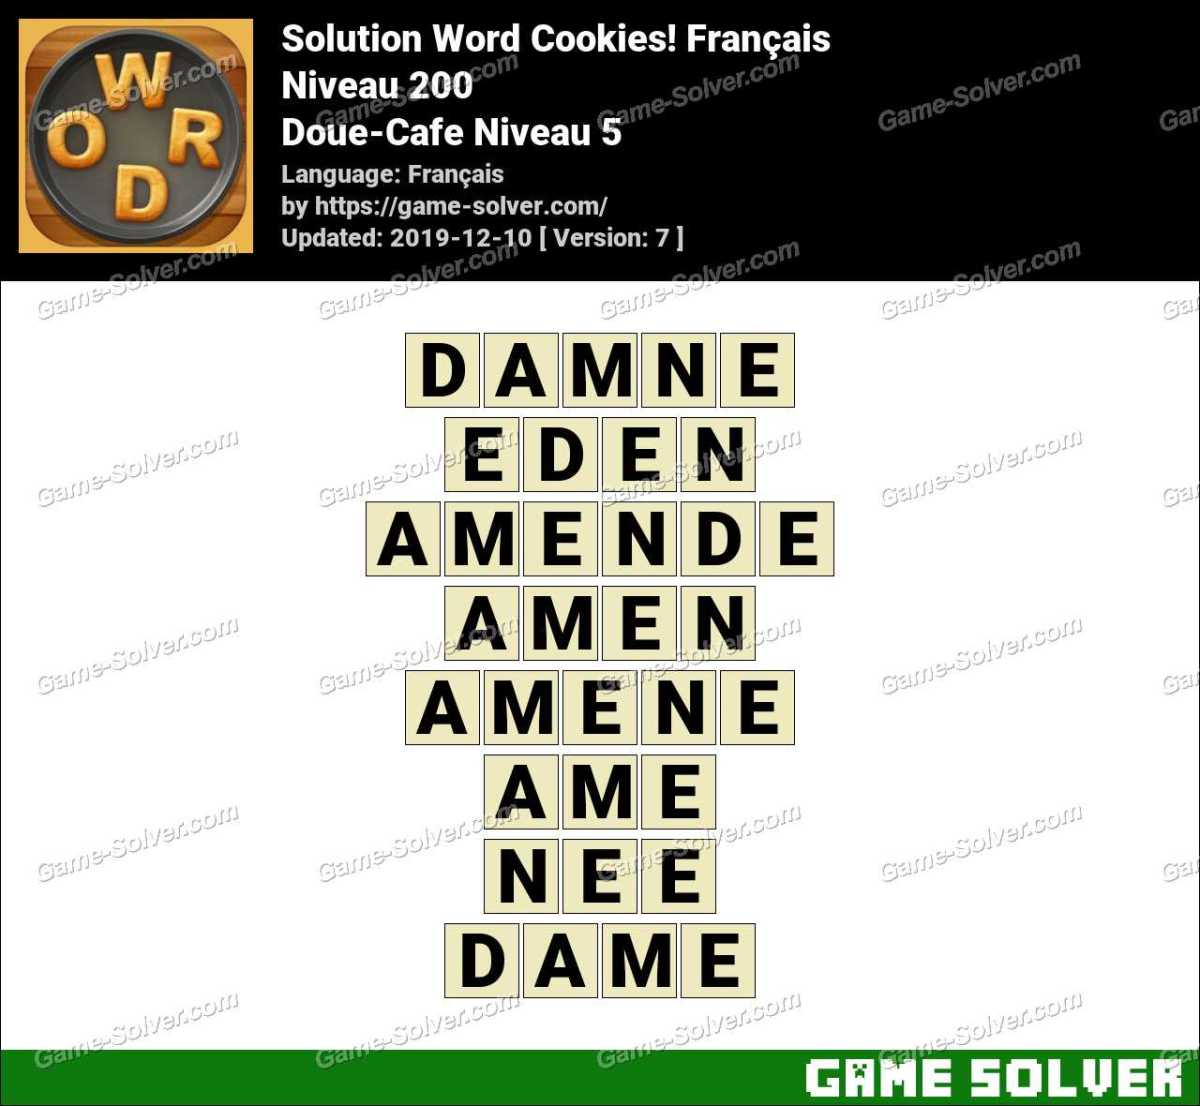 Solution Word Cookies Doue-Cafe Niveau 5